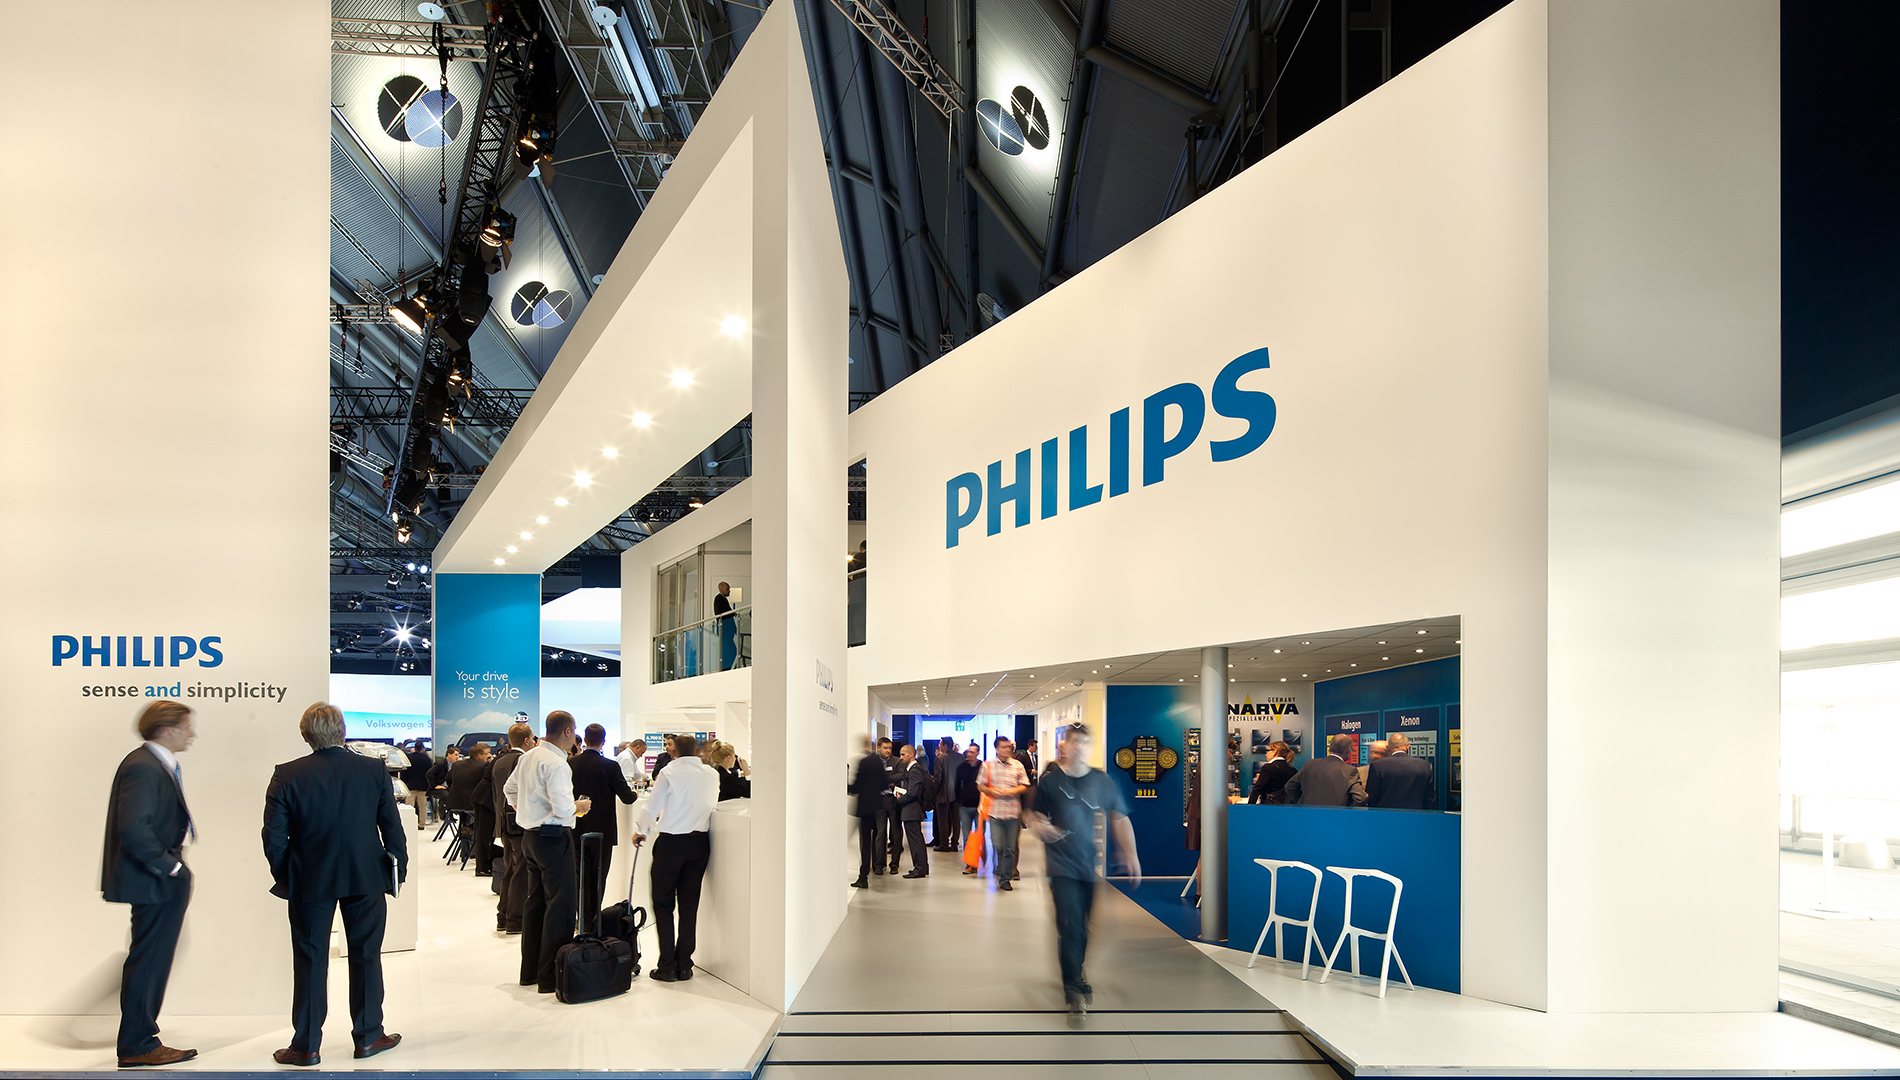 Messe Design Live Kommunikation Frankfurt Philips Automotive Lighting Messestand Gäste Going Places EventLabs